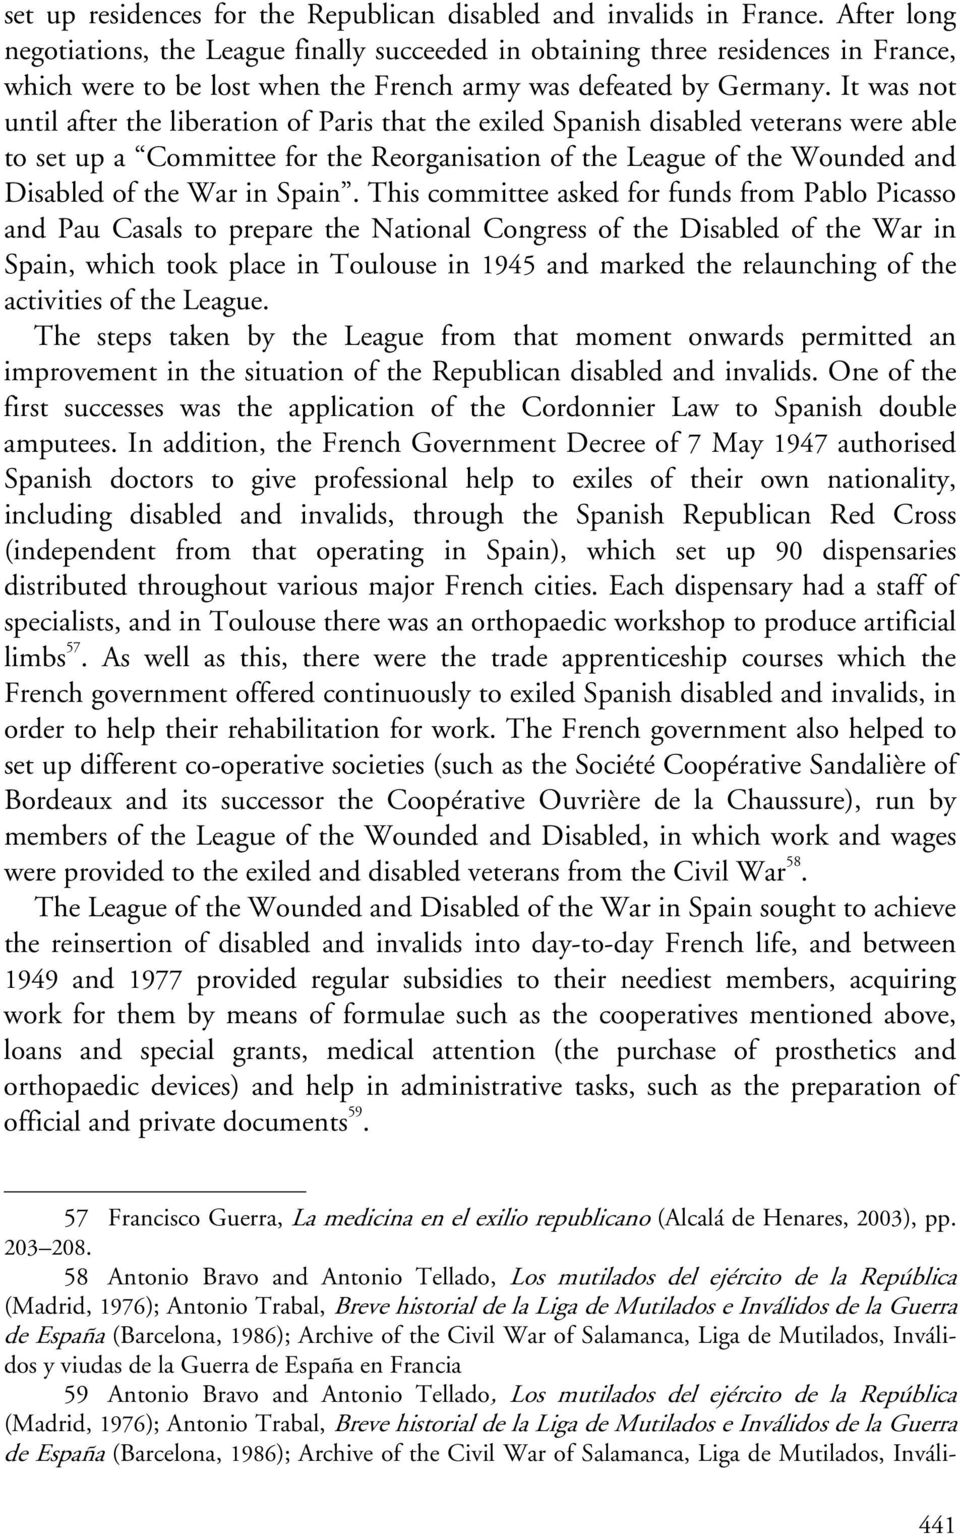 It was not until after the liberation of Paris that the exiled Spanish disabled veterans were able to set up a Committee for the Reorganisation of the League of the Wounded and Disabled of the War in